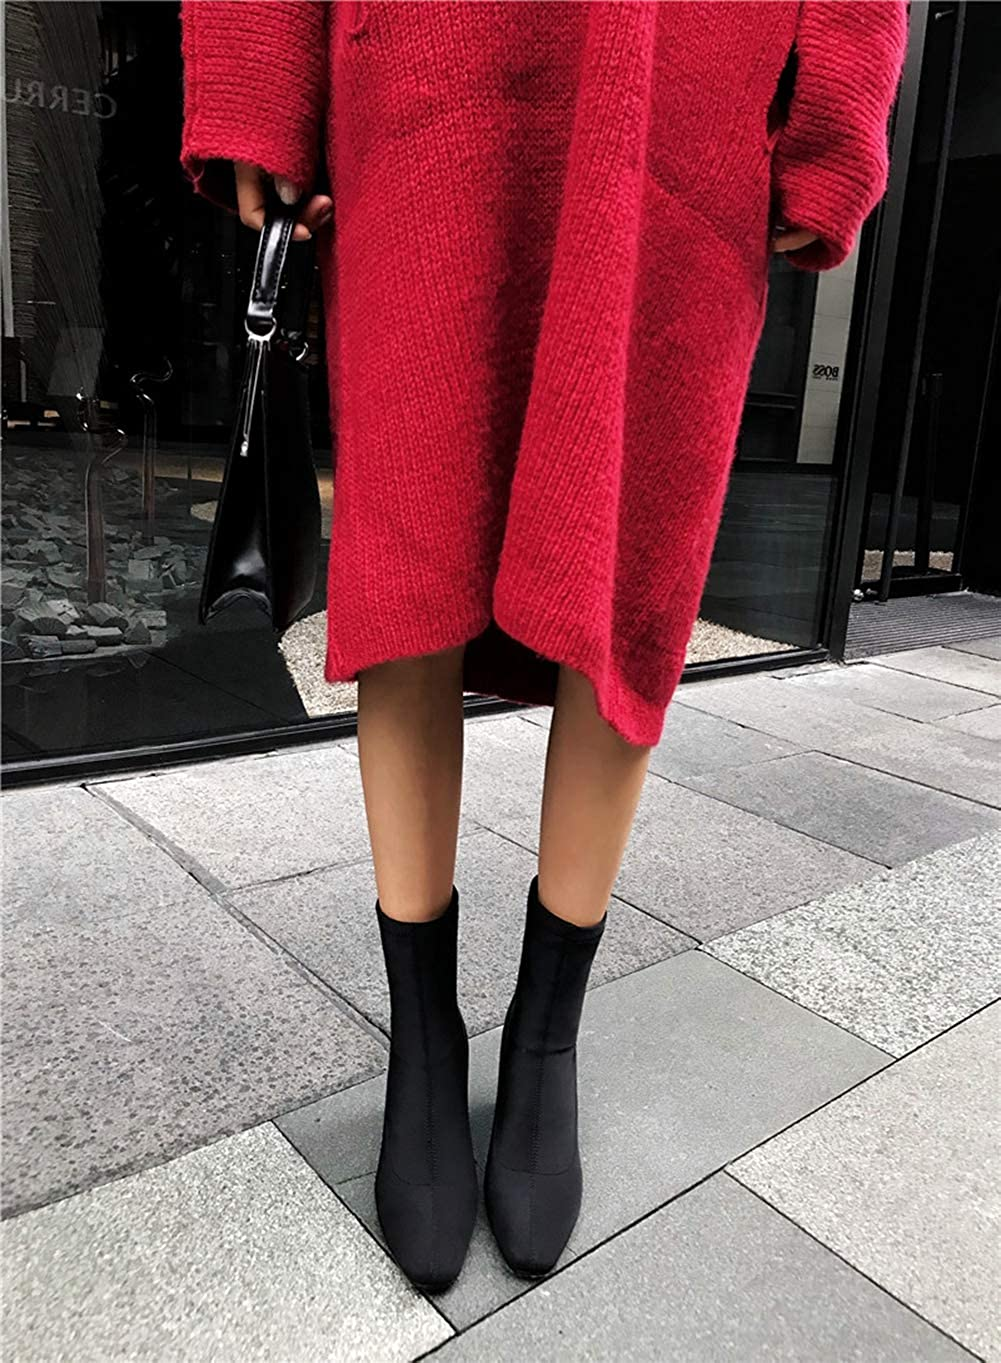 Women Winter Ankle Boots Fashion Square Toe Boots Square High Heels Popular Stretch Socks Booties